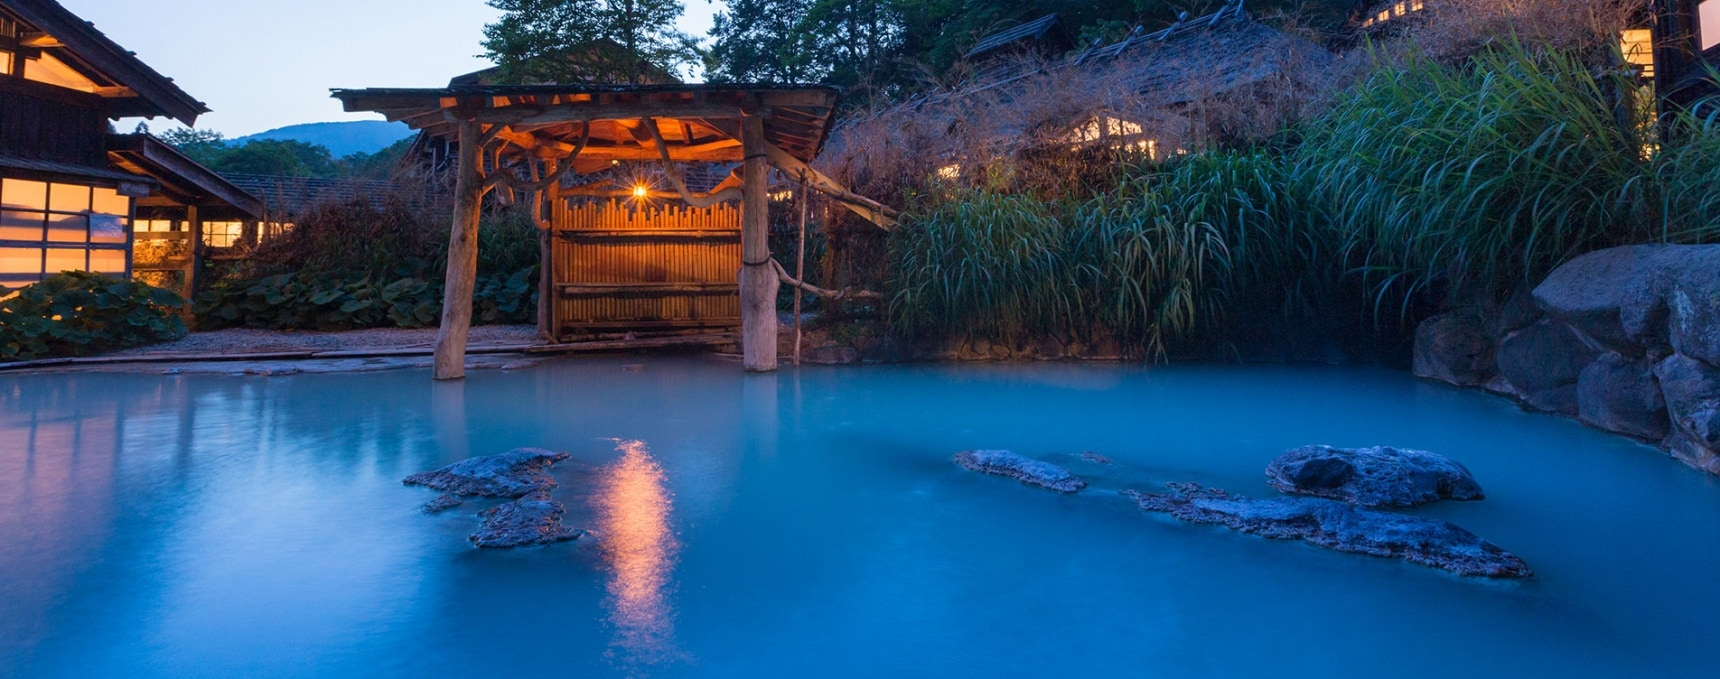 5 Great Lesser-known Onsen Towns | All About Japan